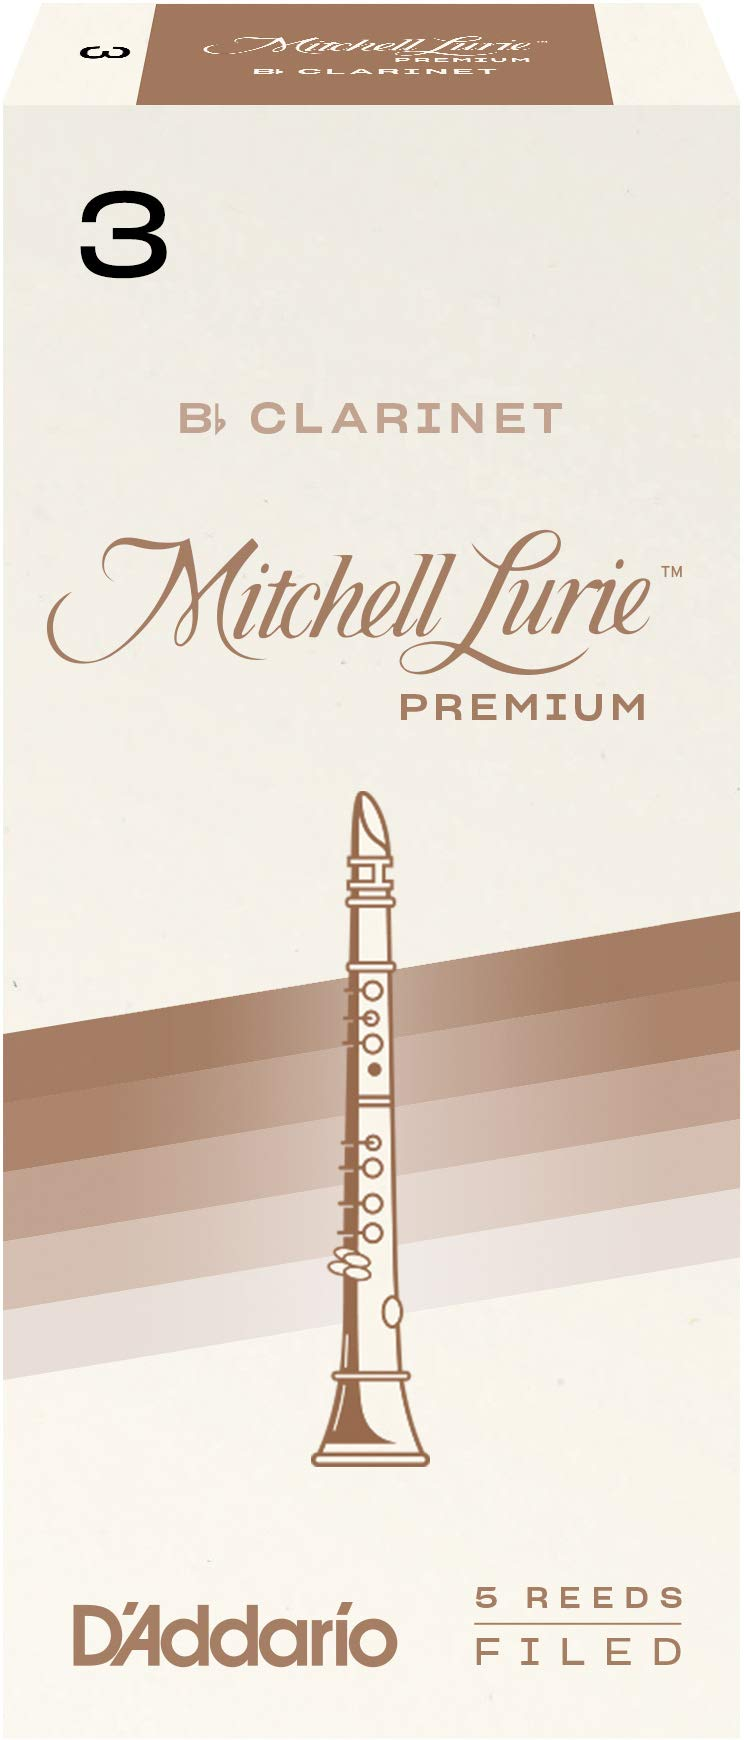 D'Addario Woodwinds Mitchell Lurie Premium Bb Clarinet Reeds, Strength 3.0, 5-pack - RMLP5BCL300